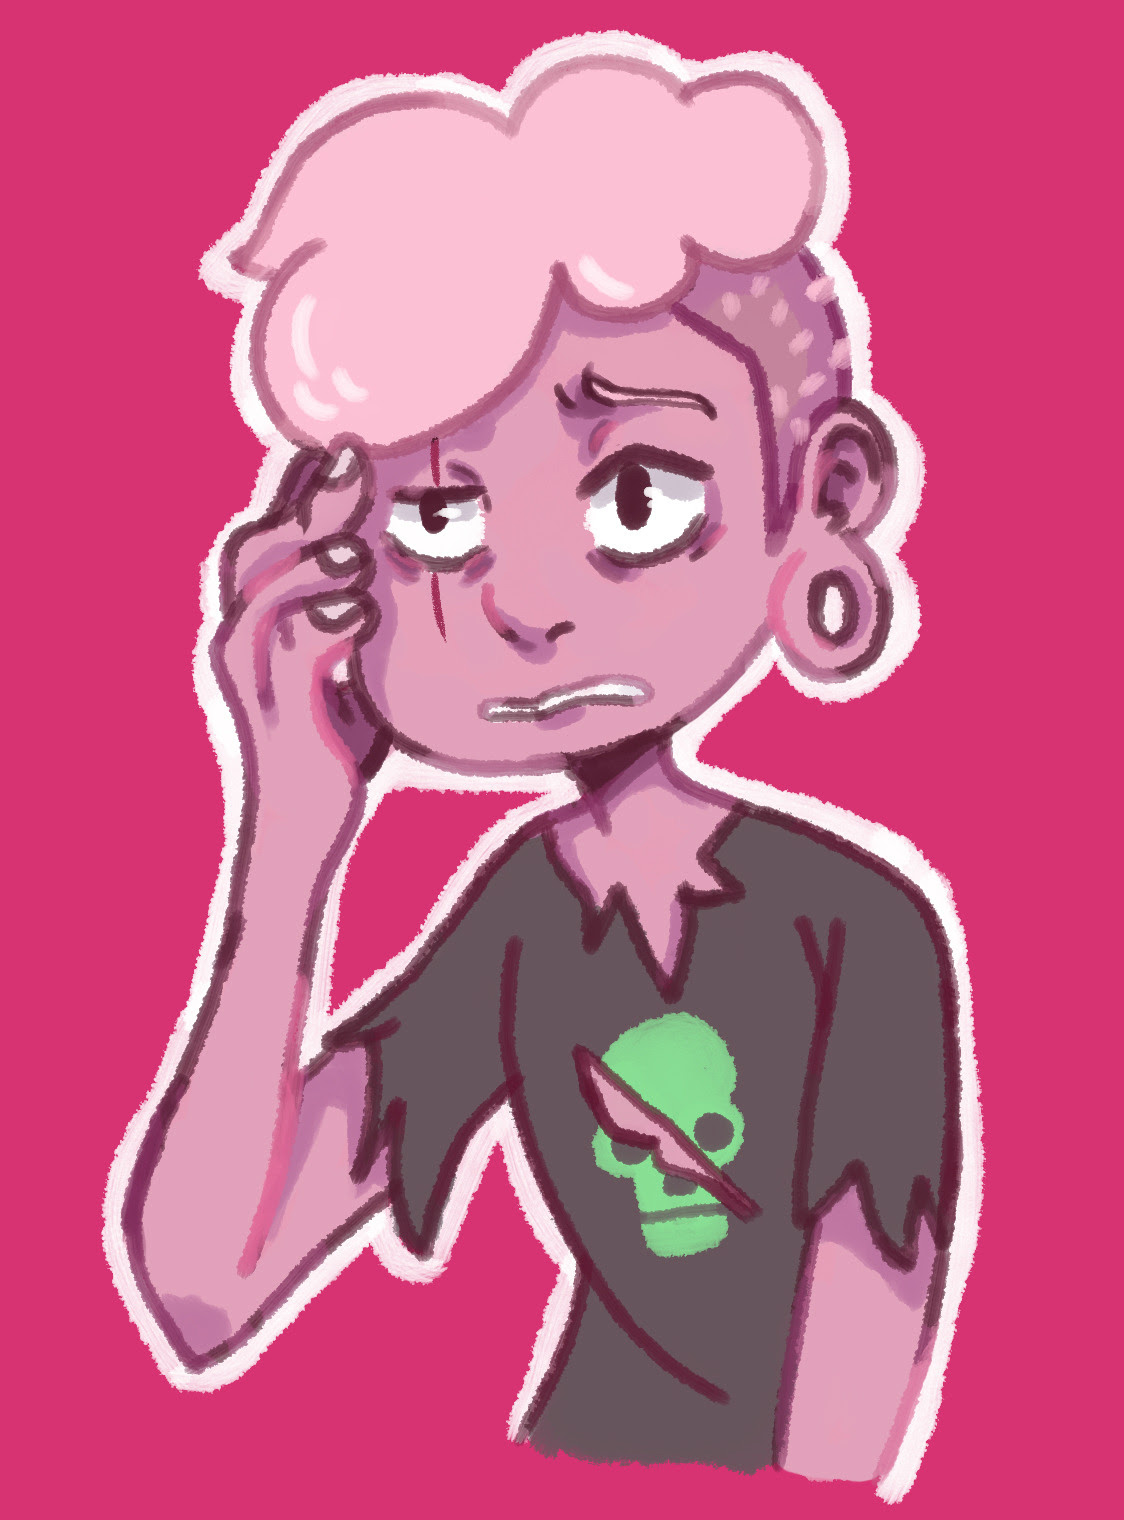 It's everyones favorite pink zombie boy! available on my redbubble here